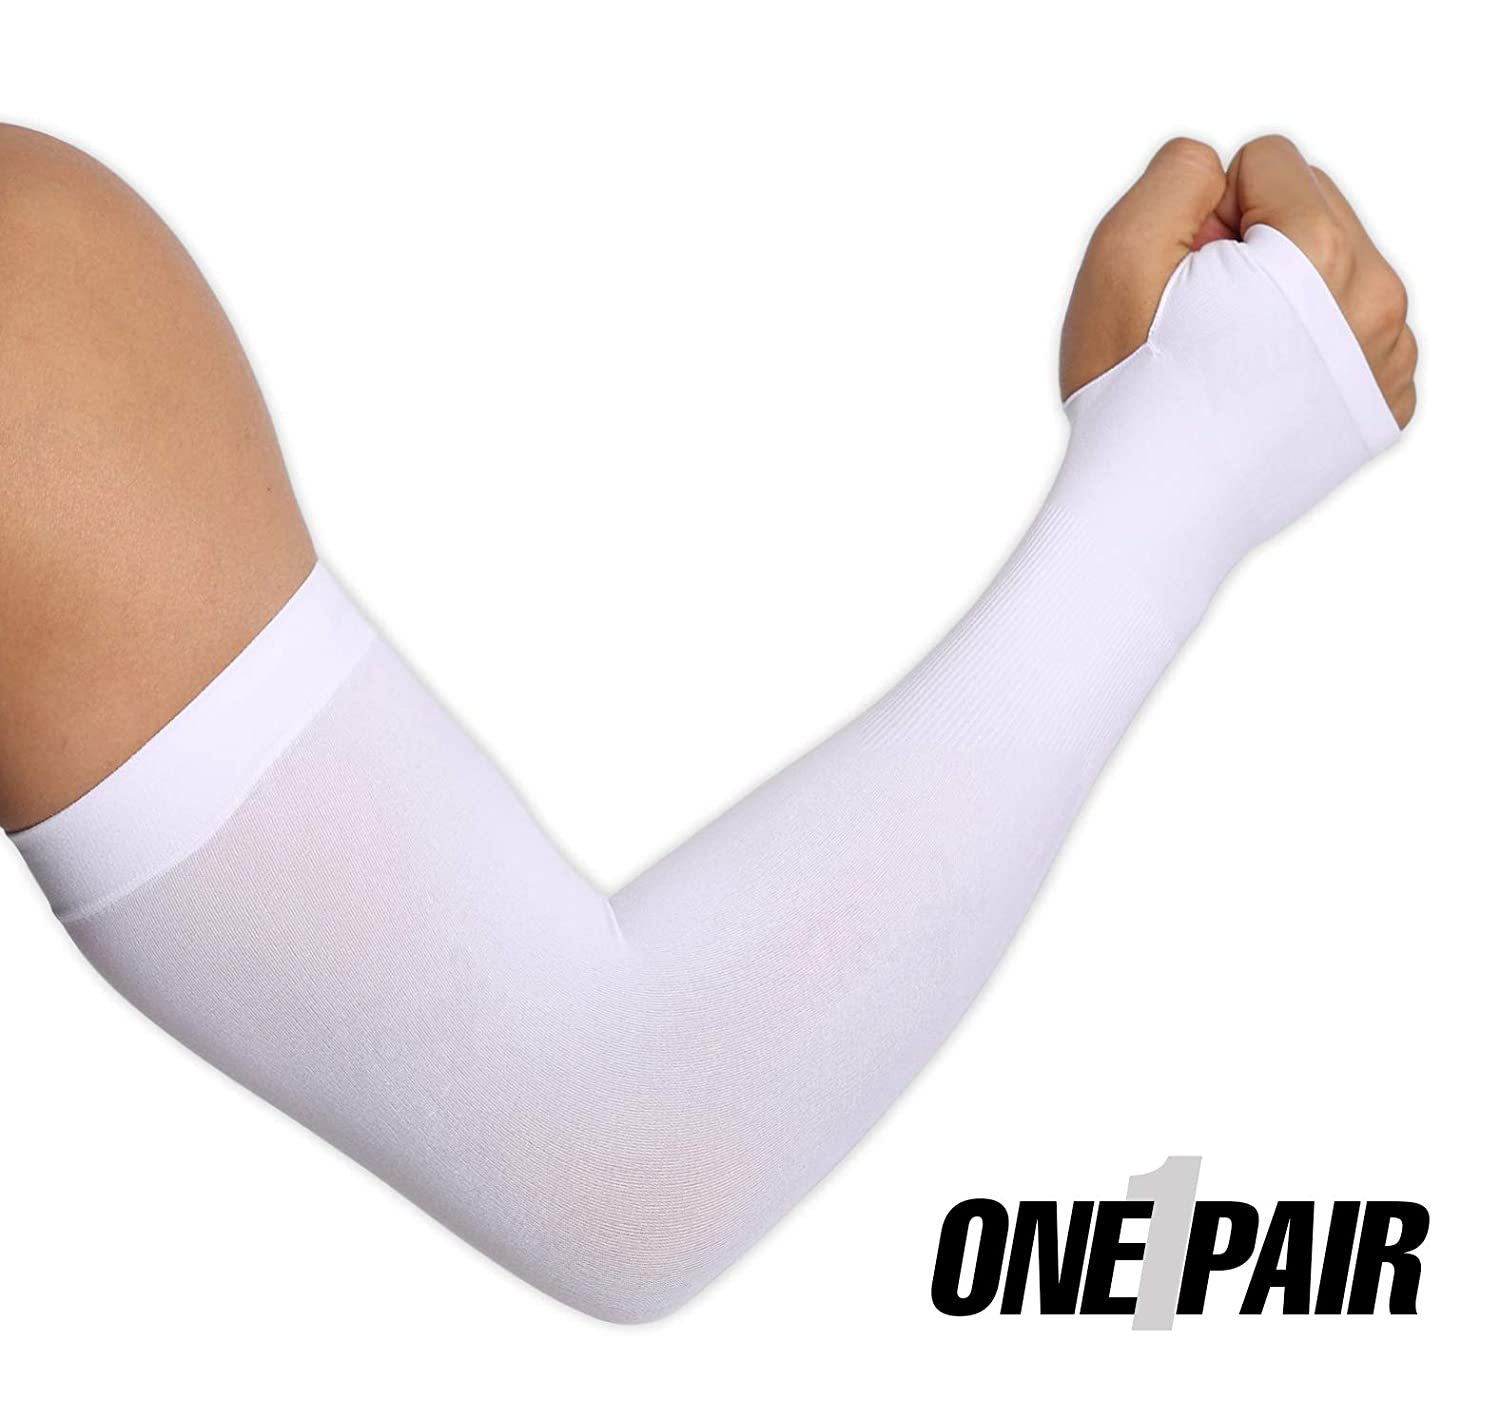 Tough Outdoors UV Protection Cooling Arm Sleeves, UPF 50 Sun Sleeves with Hand Cover for Men/Women, White TO022508